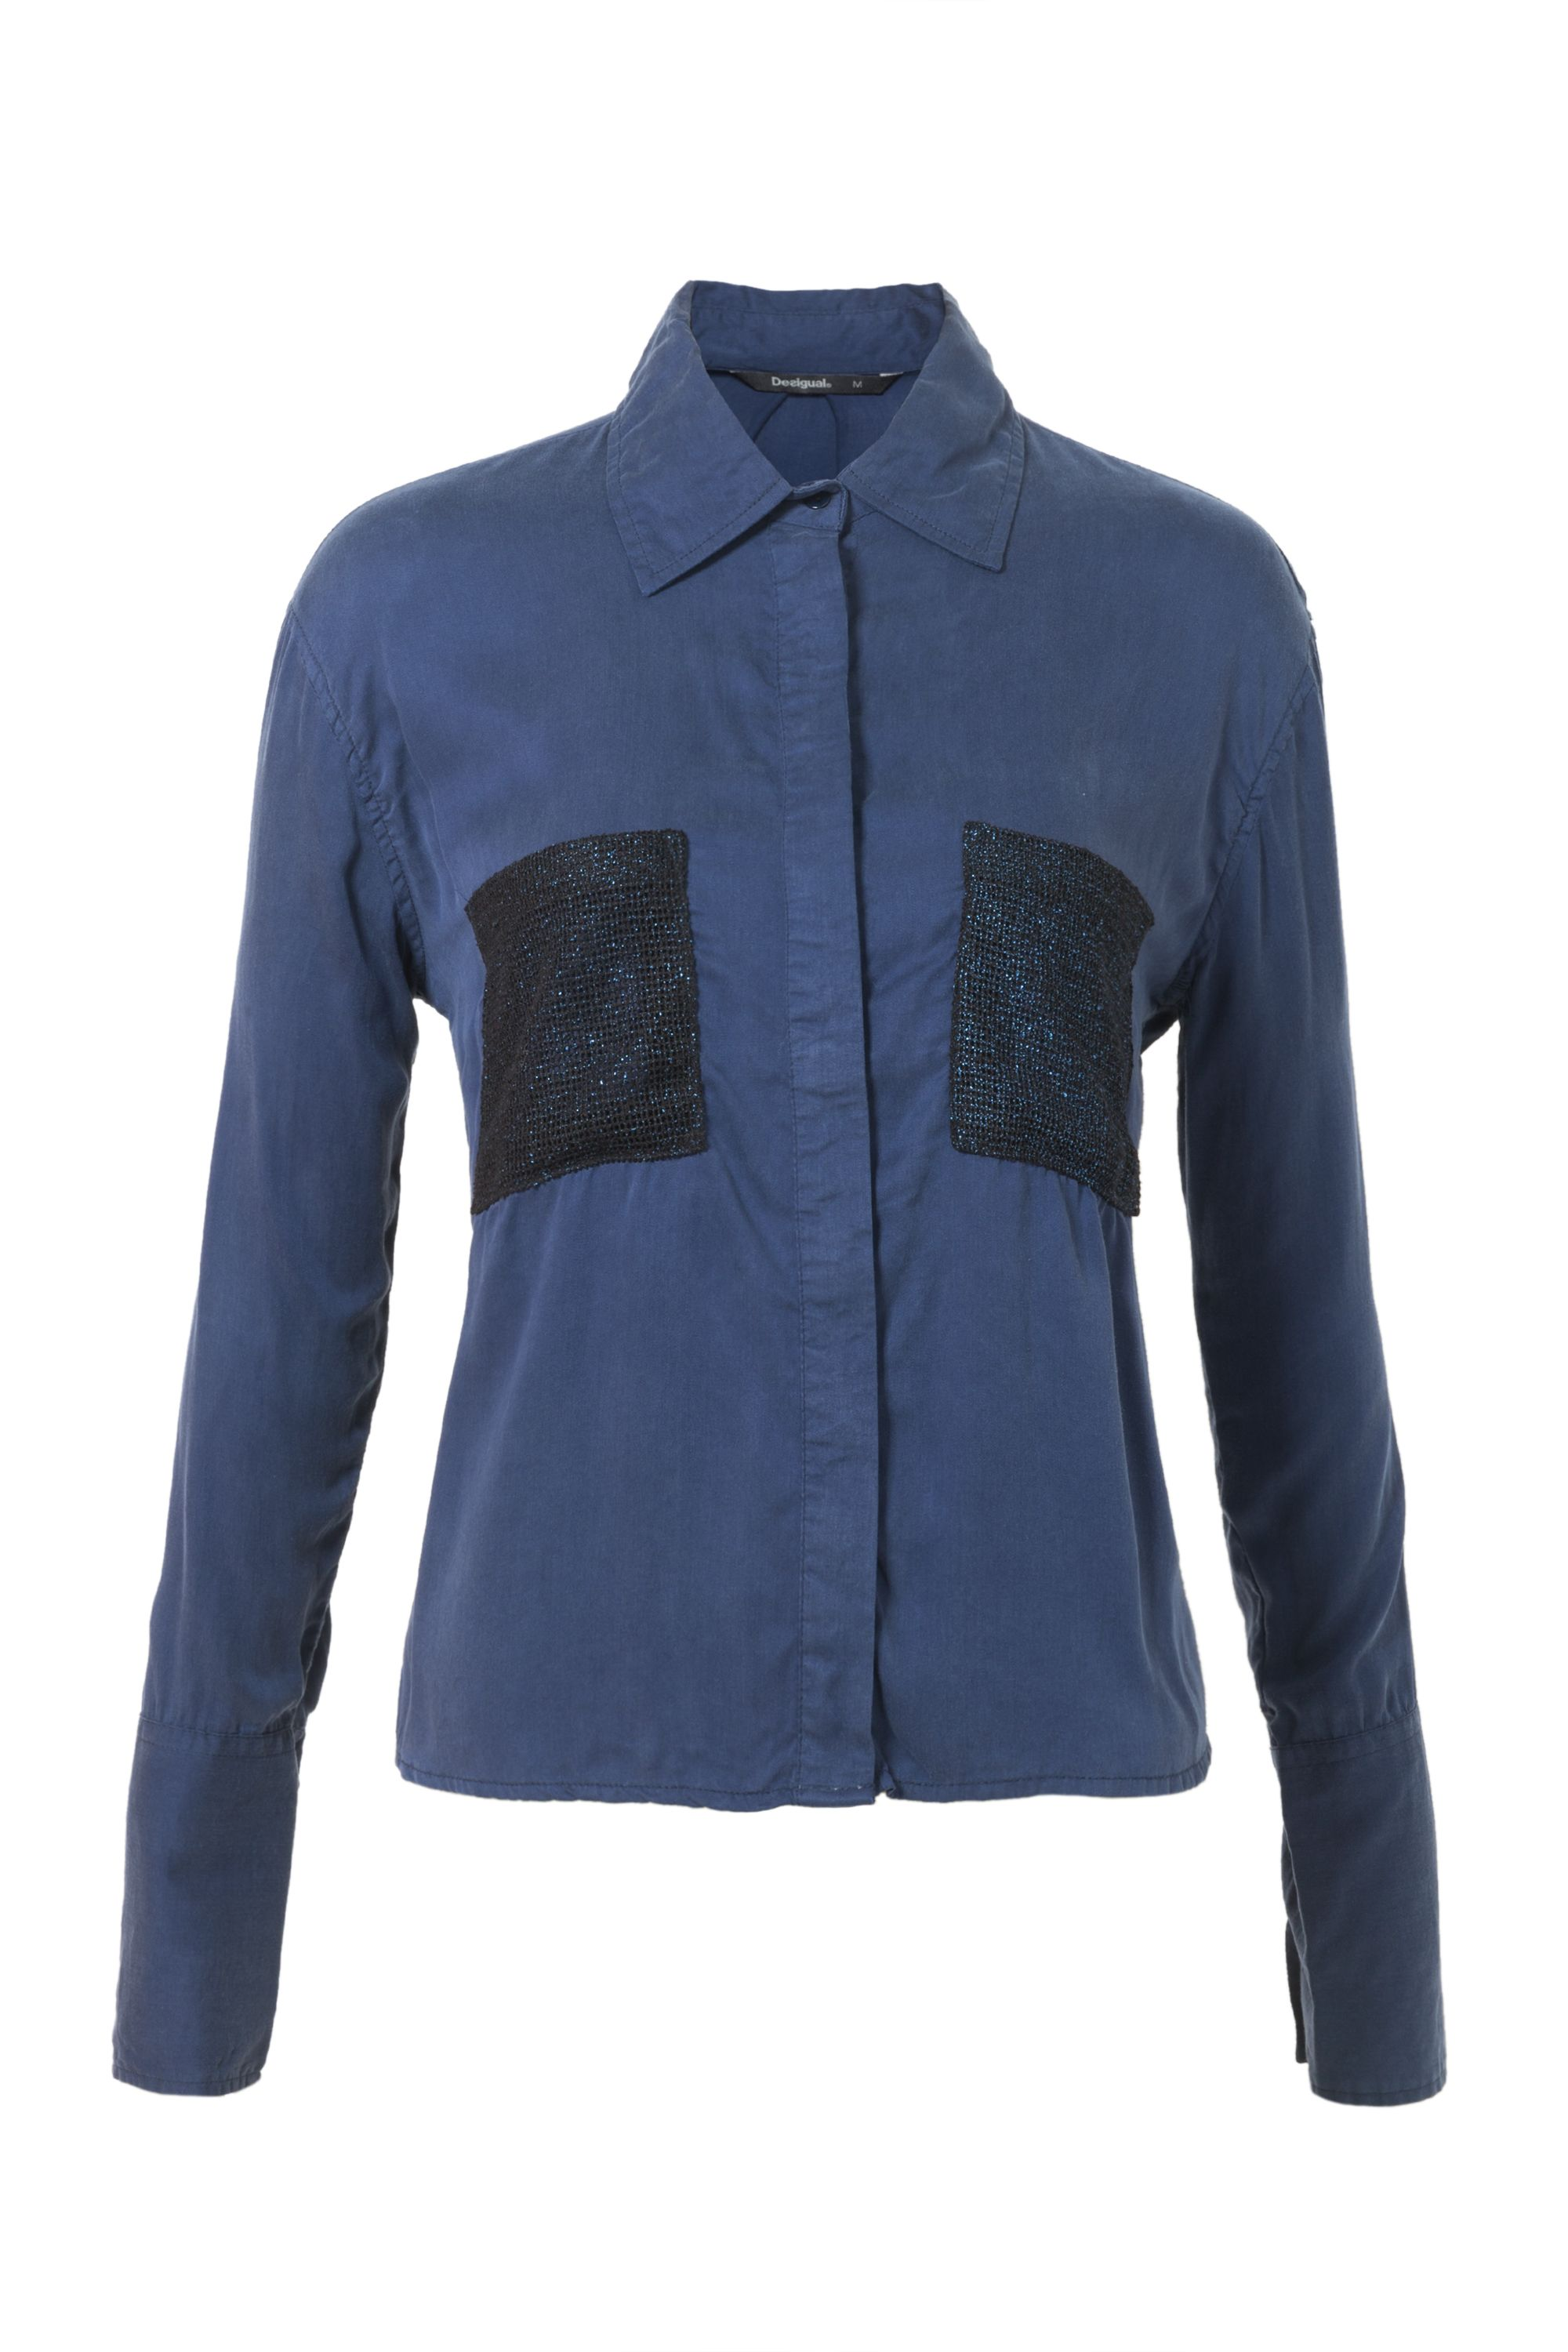 Desigual Gilbert Shirt, Blue